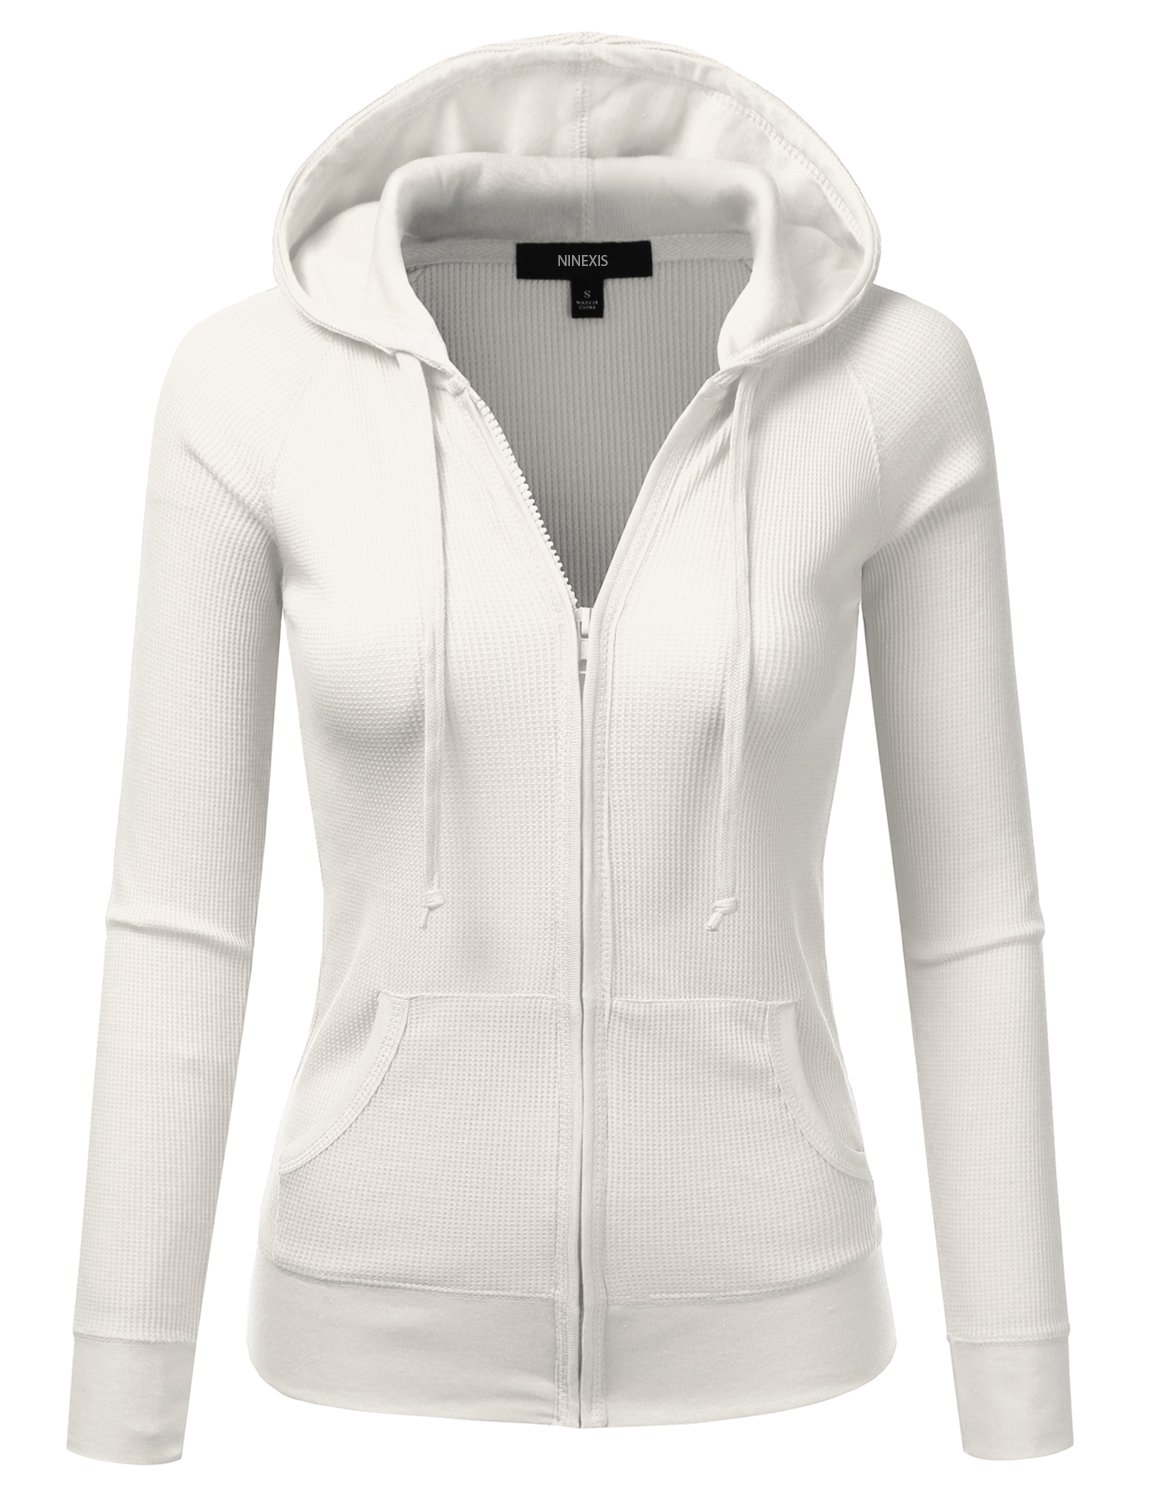 NINEXIS Women's Long Sleeve Casual Lightweight Hooded Thermal Zip-Up Jacket White L